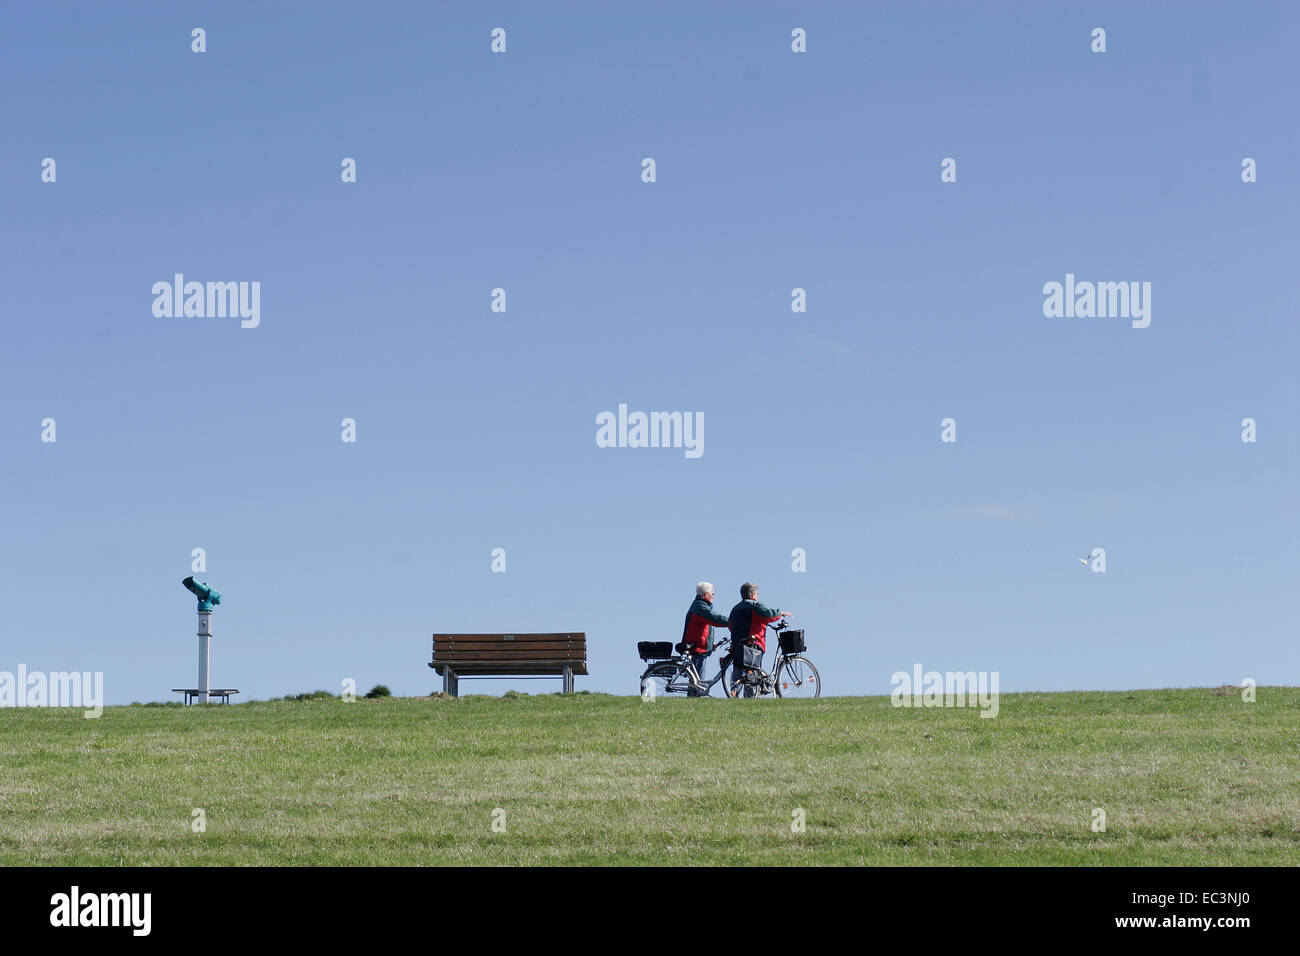 2 Persons with Bicycle - Stock Image